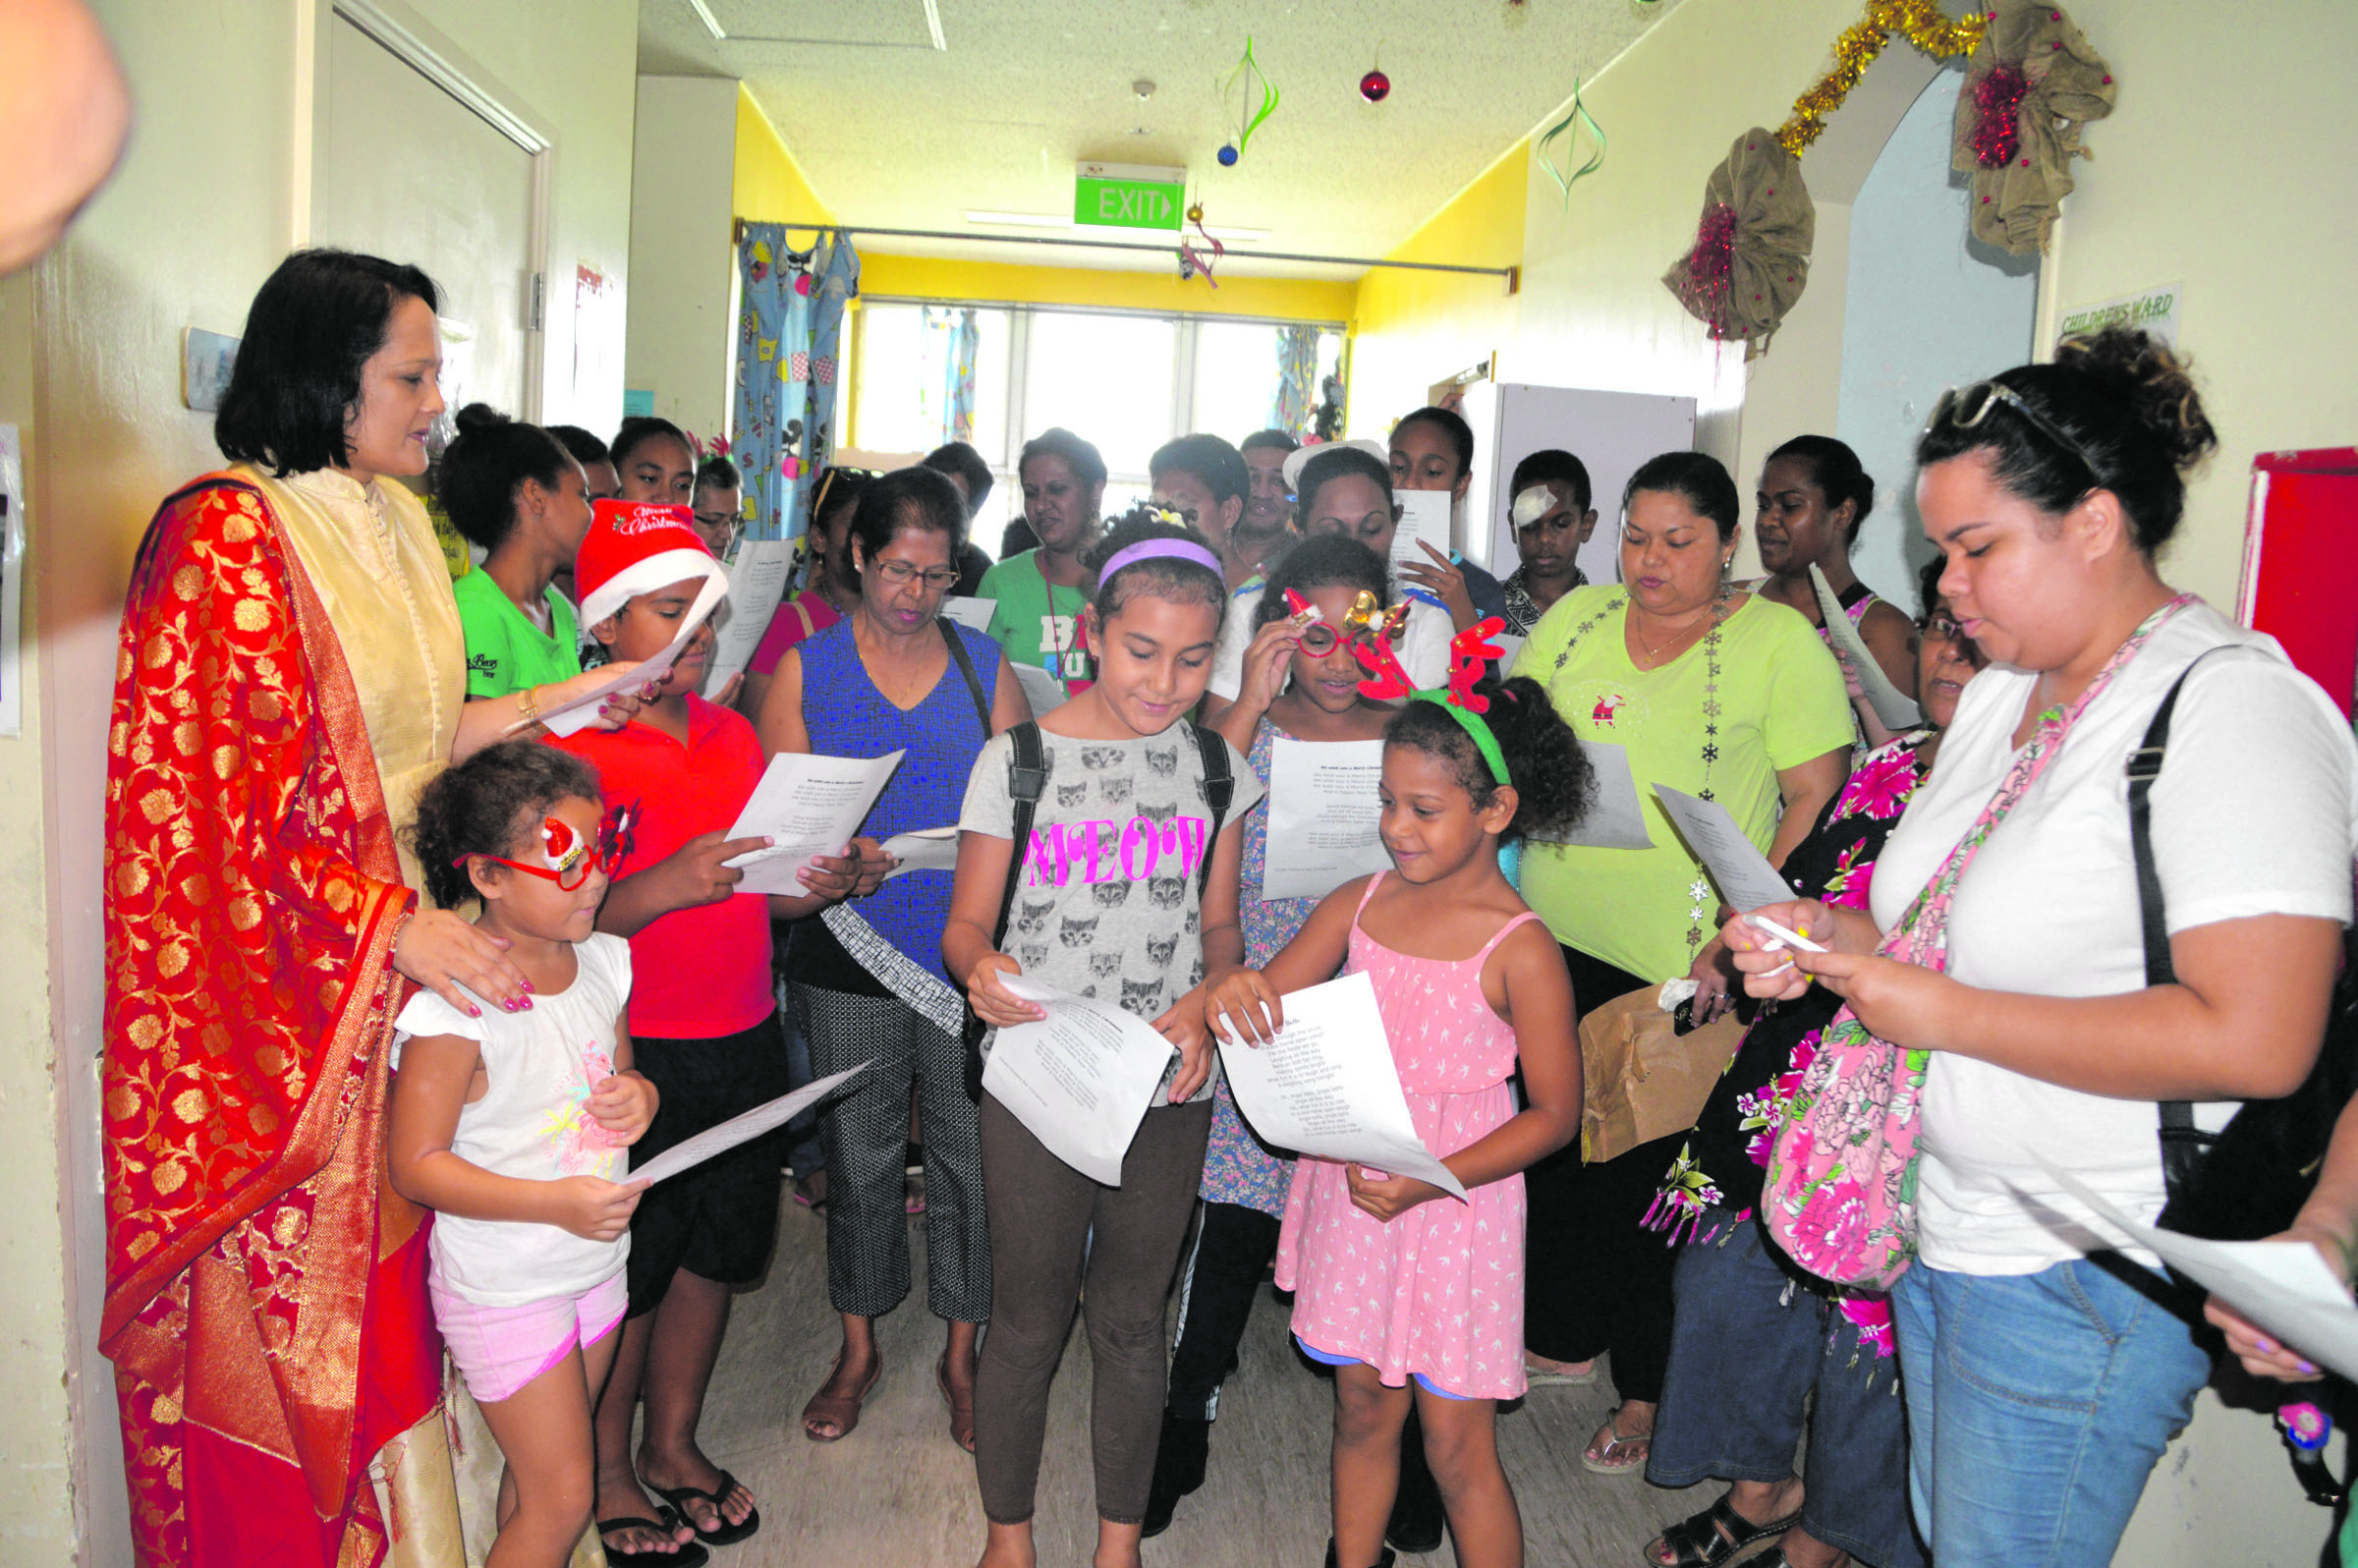 Minister for Health and Medical Services Rosy Akbar with some International School Suva primary students at the Colonial War Memorial Hospital Children's Ward on December 9, 2017.  Photo: Ministry of Health and Medical Services